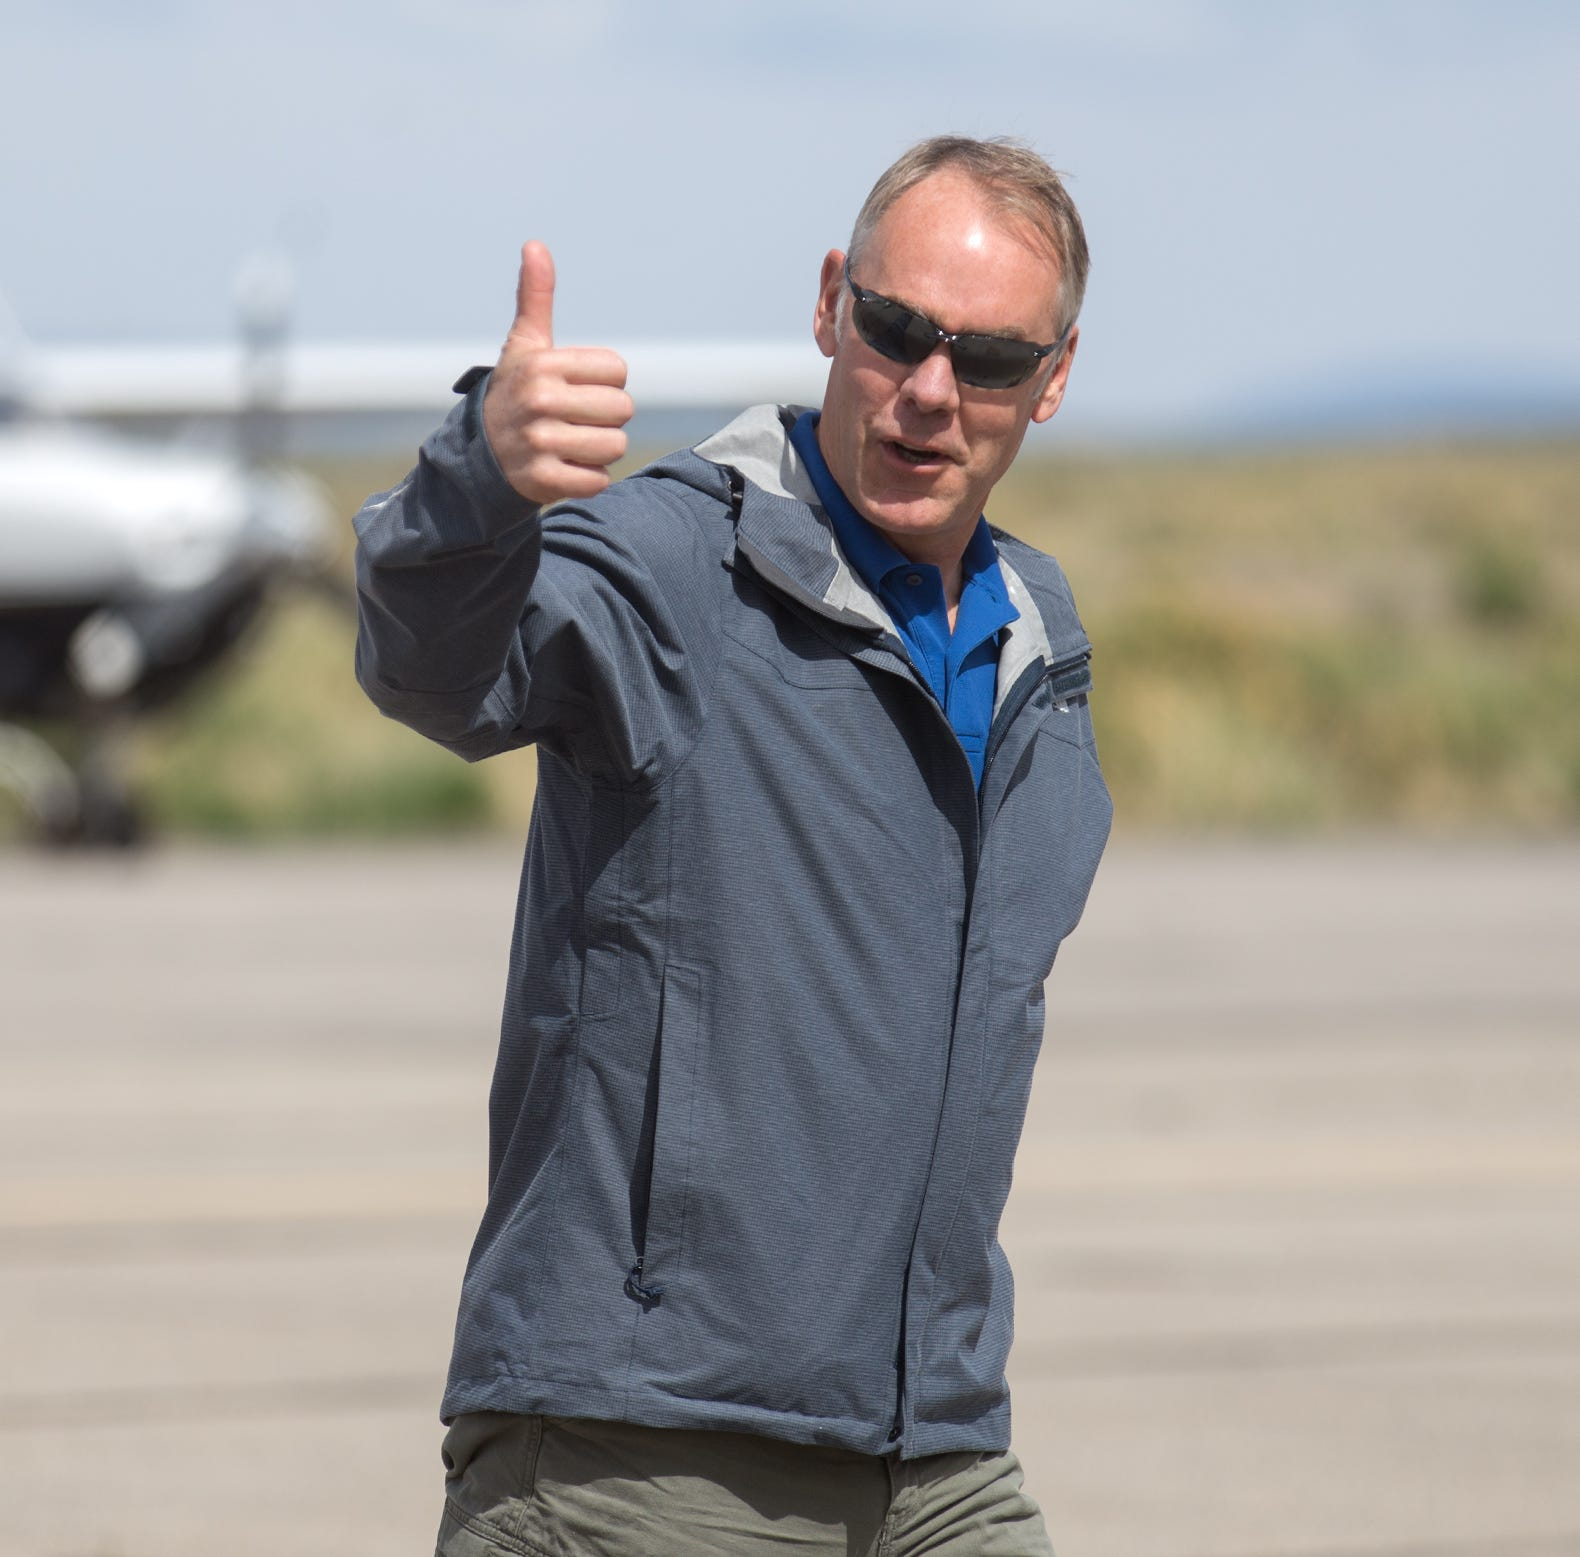 U.S. Interior Secretary Ryan Zinke arrives, Monday, May 8, 2017 at the Blanding Muncipal Airport in Utah during a review of the Bears Ears National Monument designation.